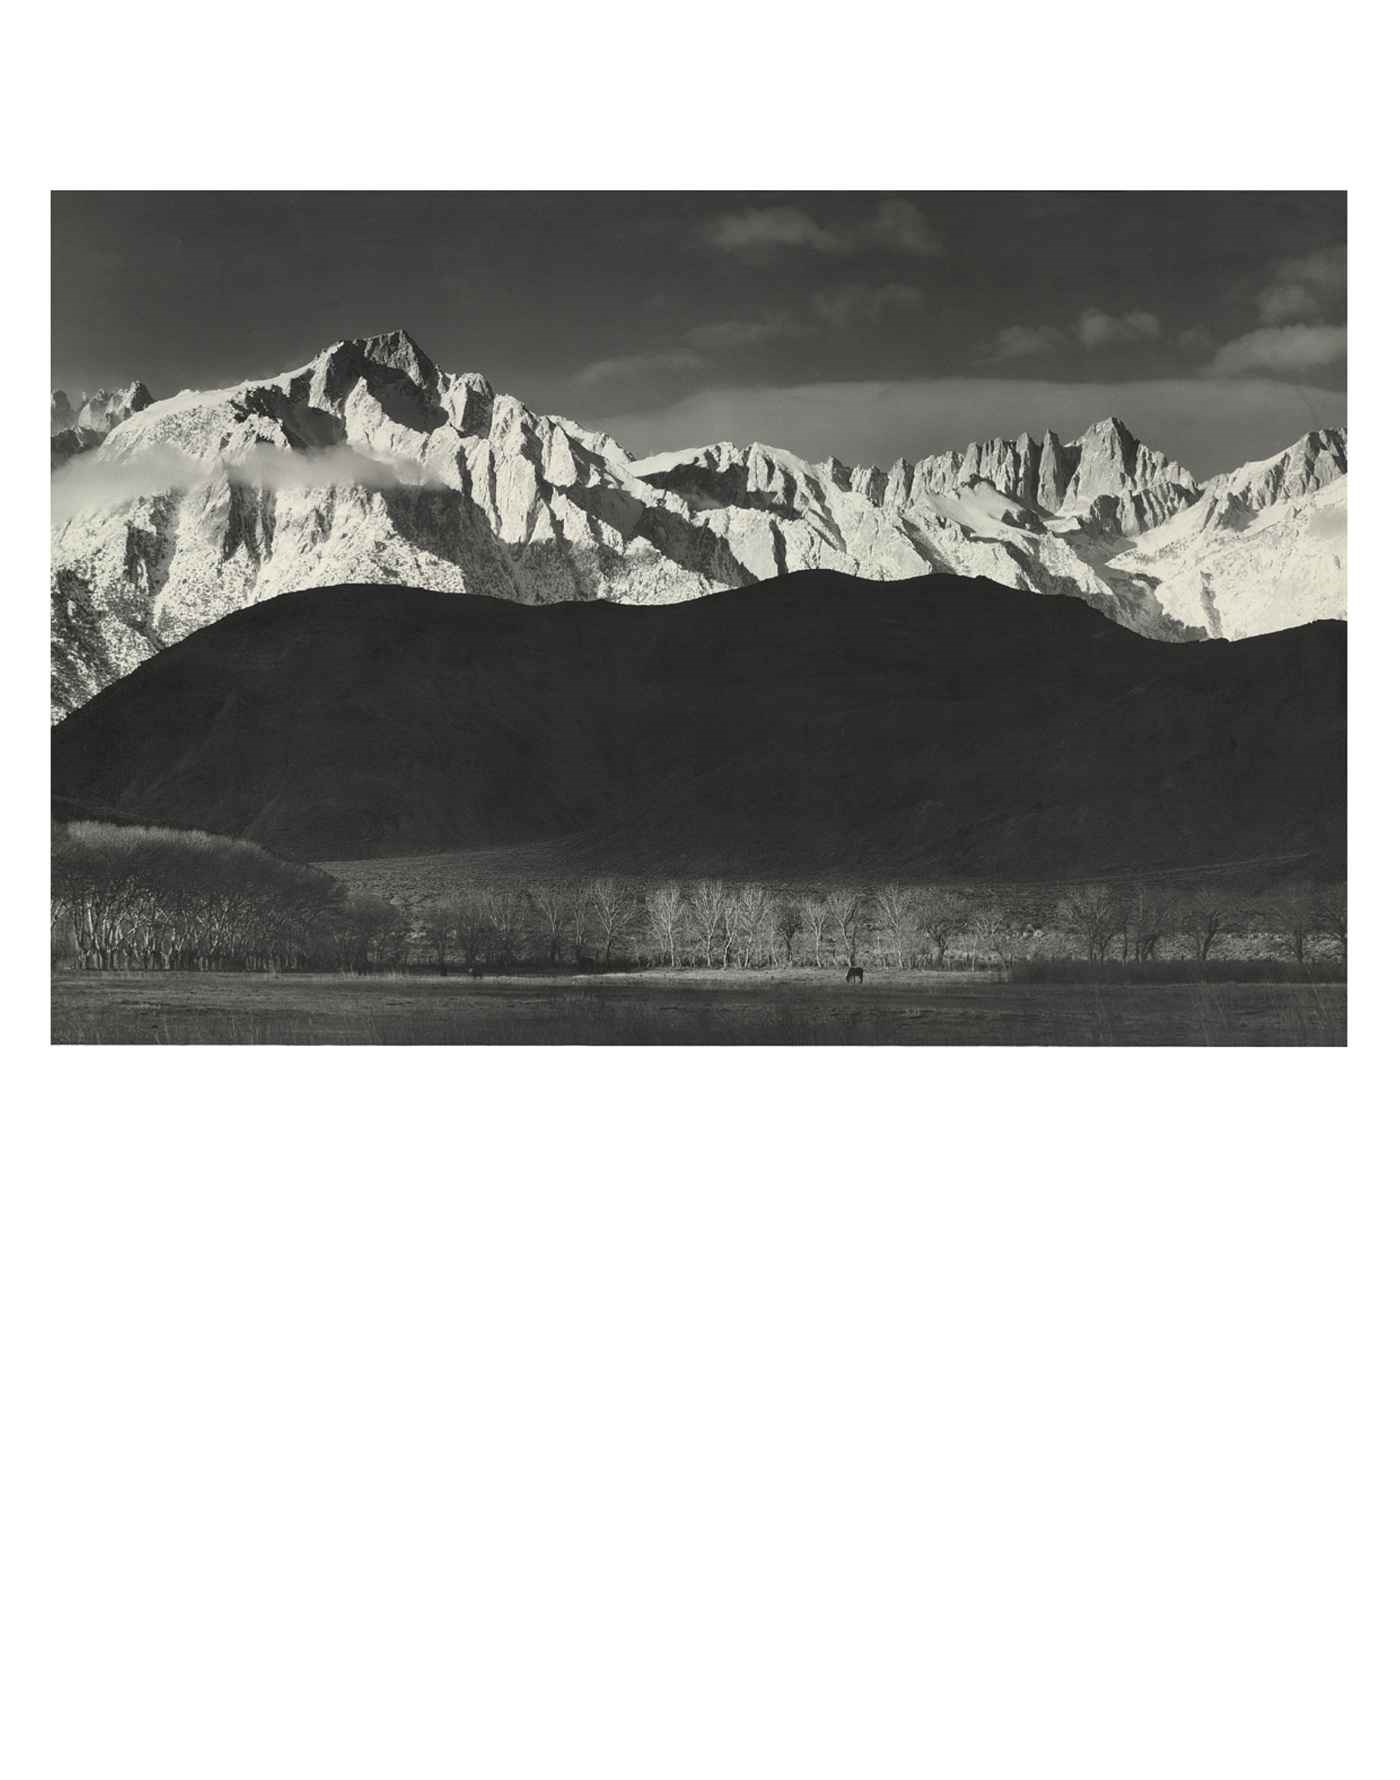 The Range of Light: Photograph auction at Christies